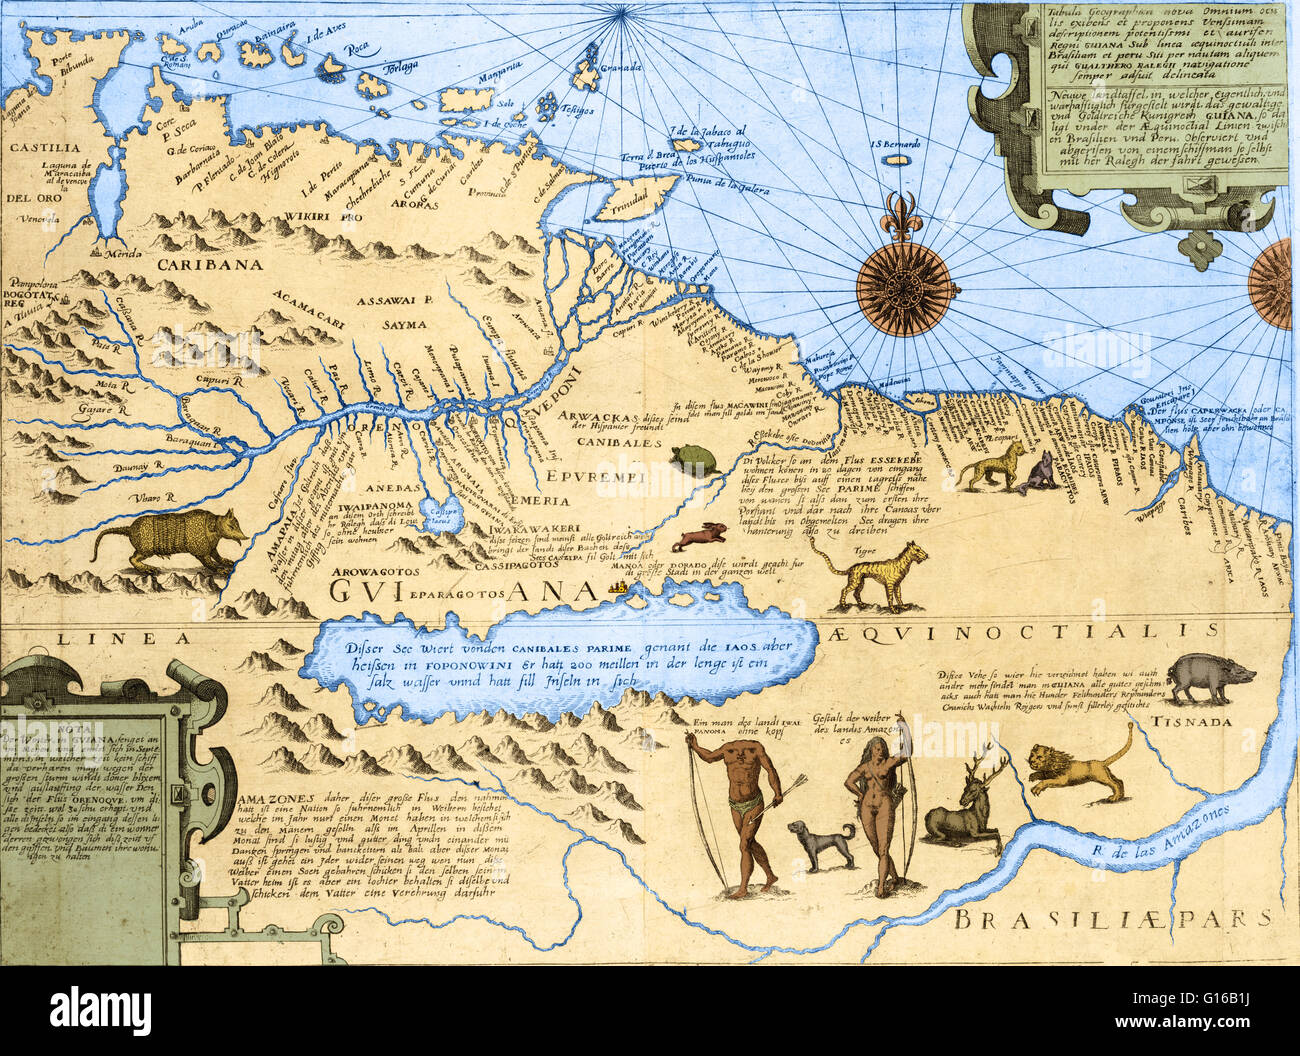 Map of Guyana and Brazil showing the Amazon river, wild animals, a ...